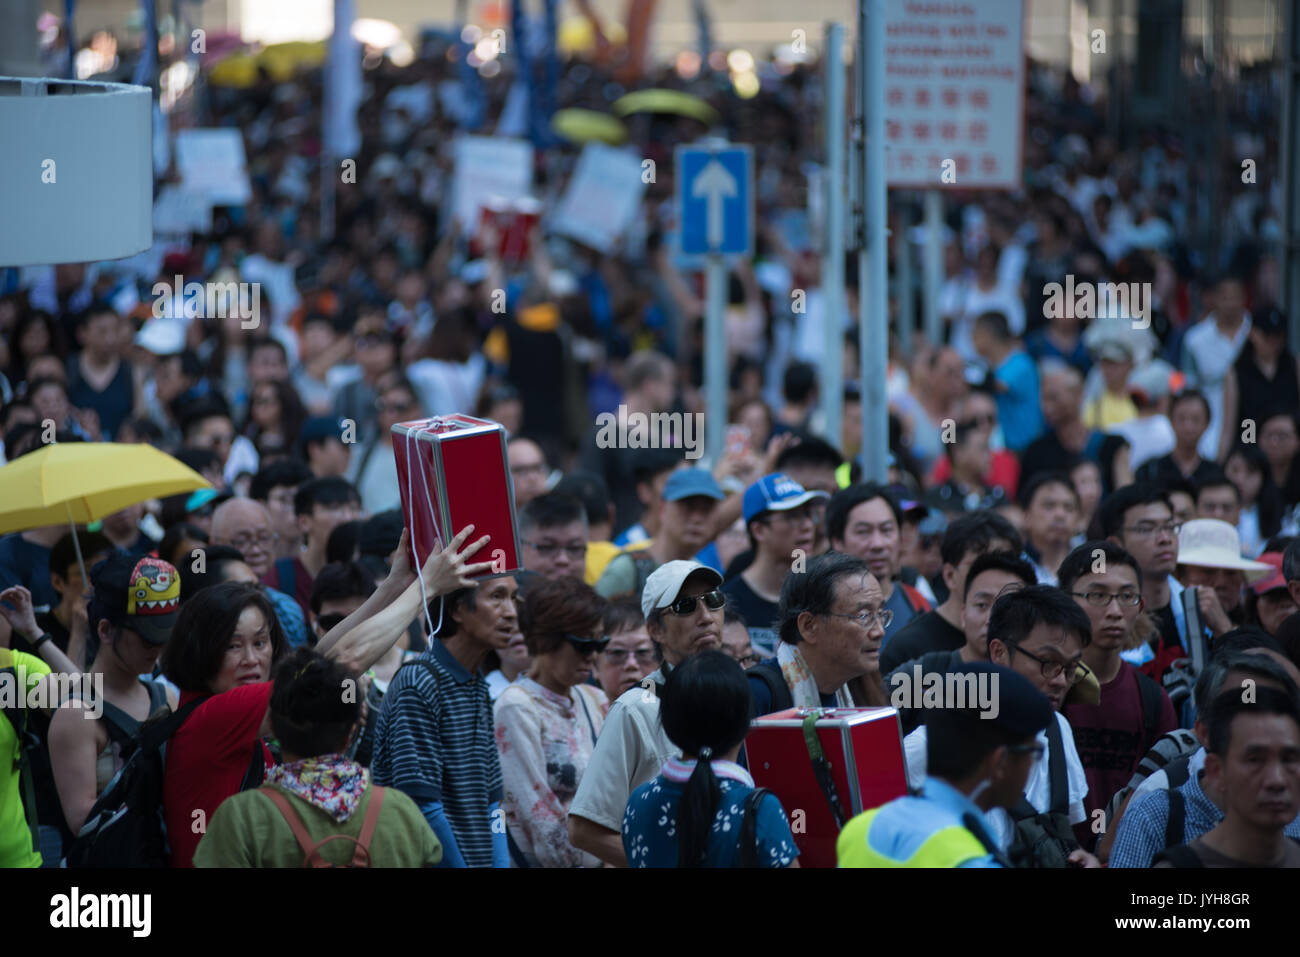 Hong Kong. 20th Aug, 2017. During the protest on 20/08 against the imprisonment of Protesters in Hong Kong, some of the organizers hoist donation boxes to the marchers. Credit: Visions of Asia/Alamy Live News - Stock Image